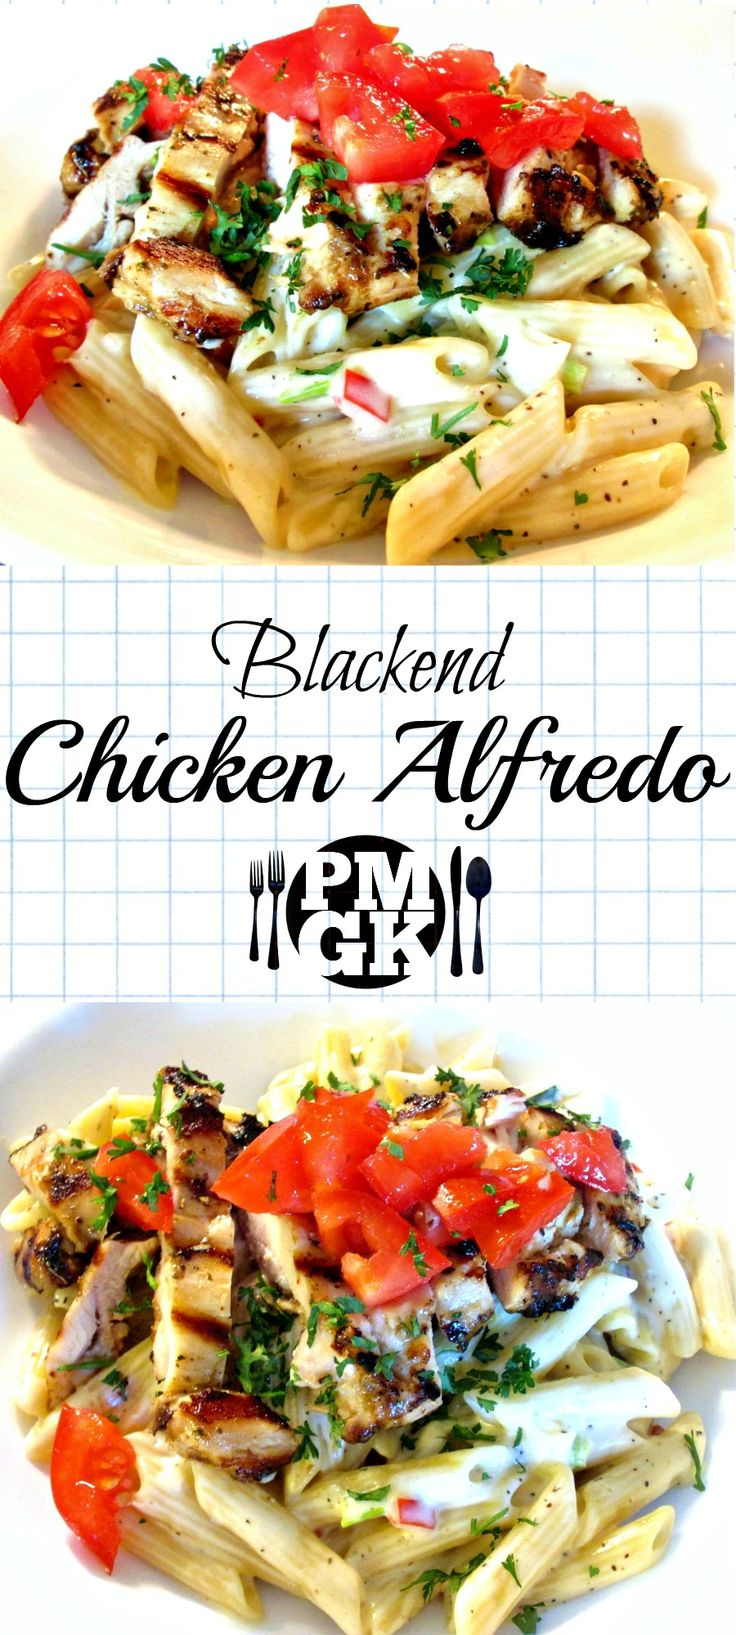 This Blackened Chicken Alfredo recipe is one of my all time favorites.  A local Restaurant here serves this on their menu and now I'm showing you how to make it your self, so be sure to watch my short video tutorial and I'll take you straight to making this dish.  Poor Man's Gourmet kitchen